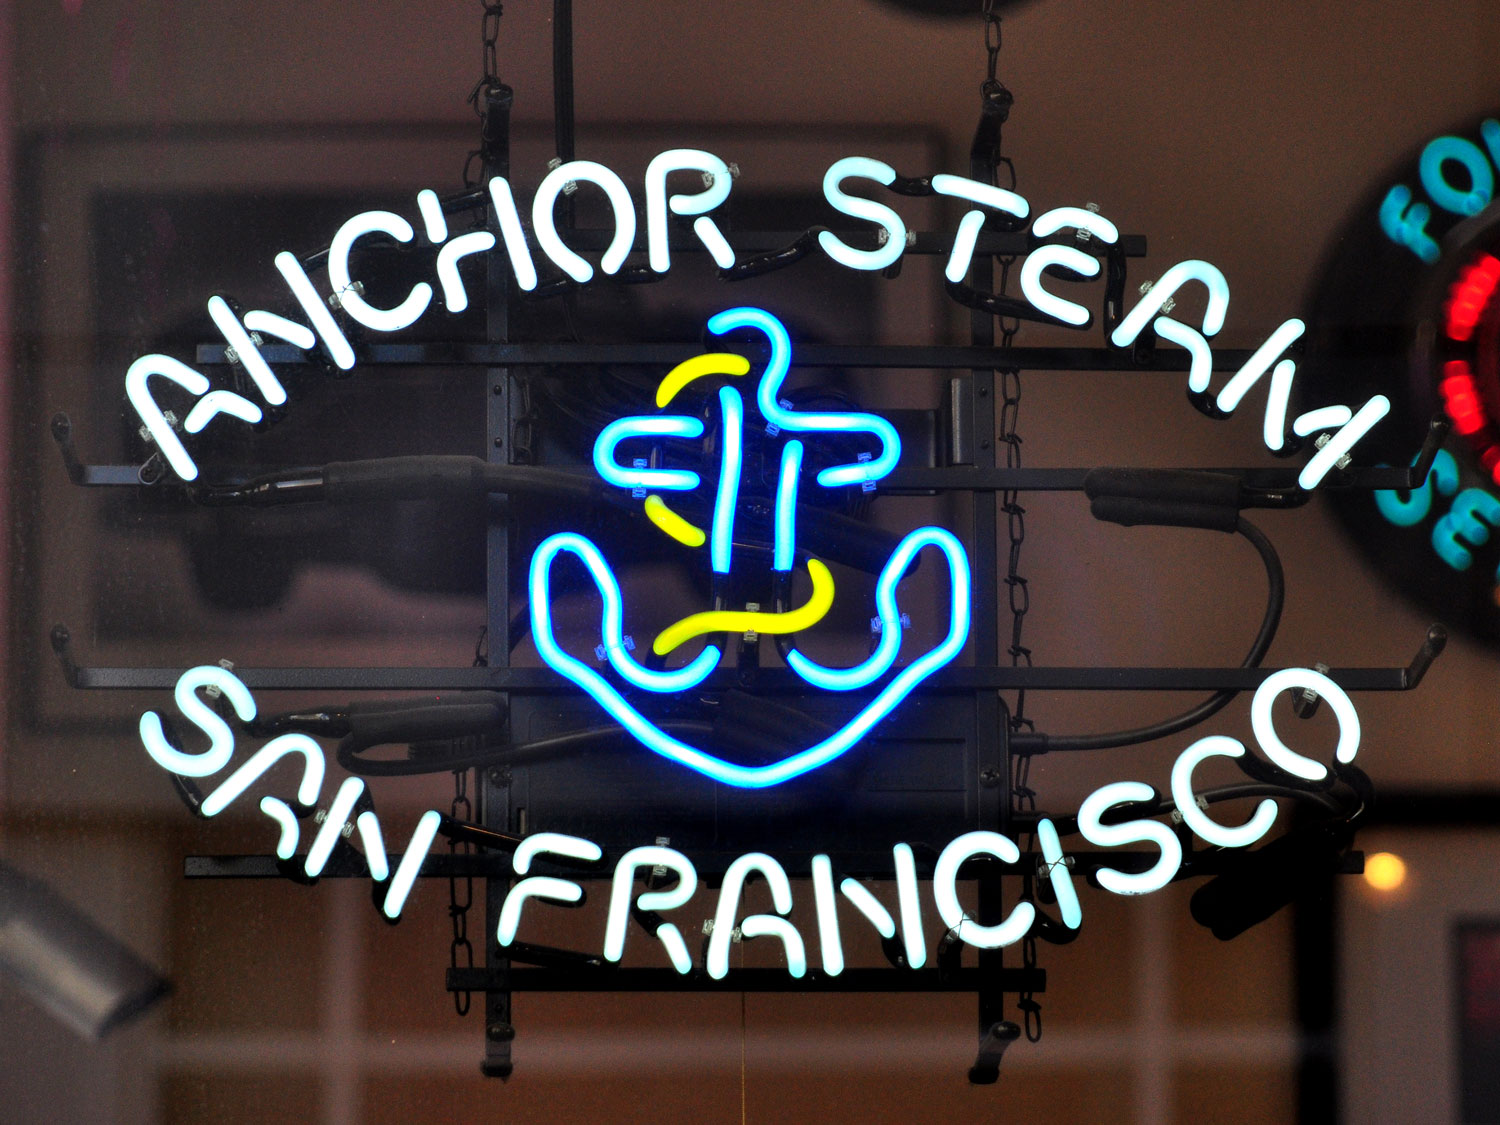 anchor-steam-sapporo-sale-FT-BLOG0817.jpg